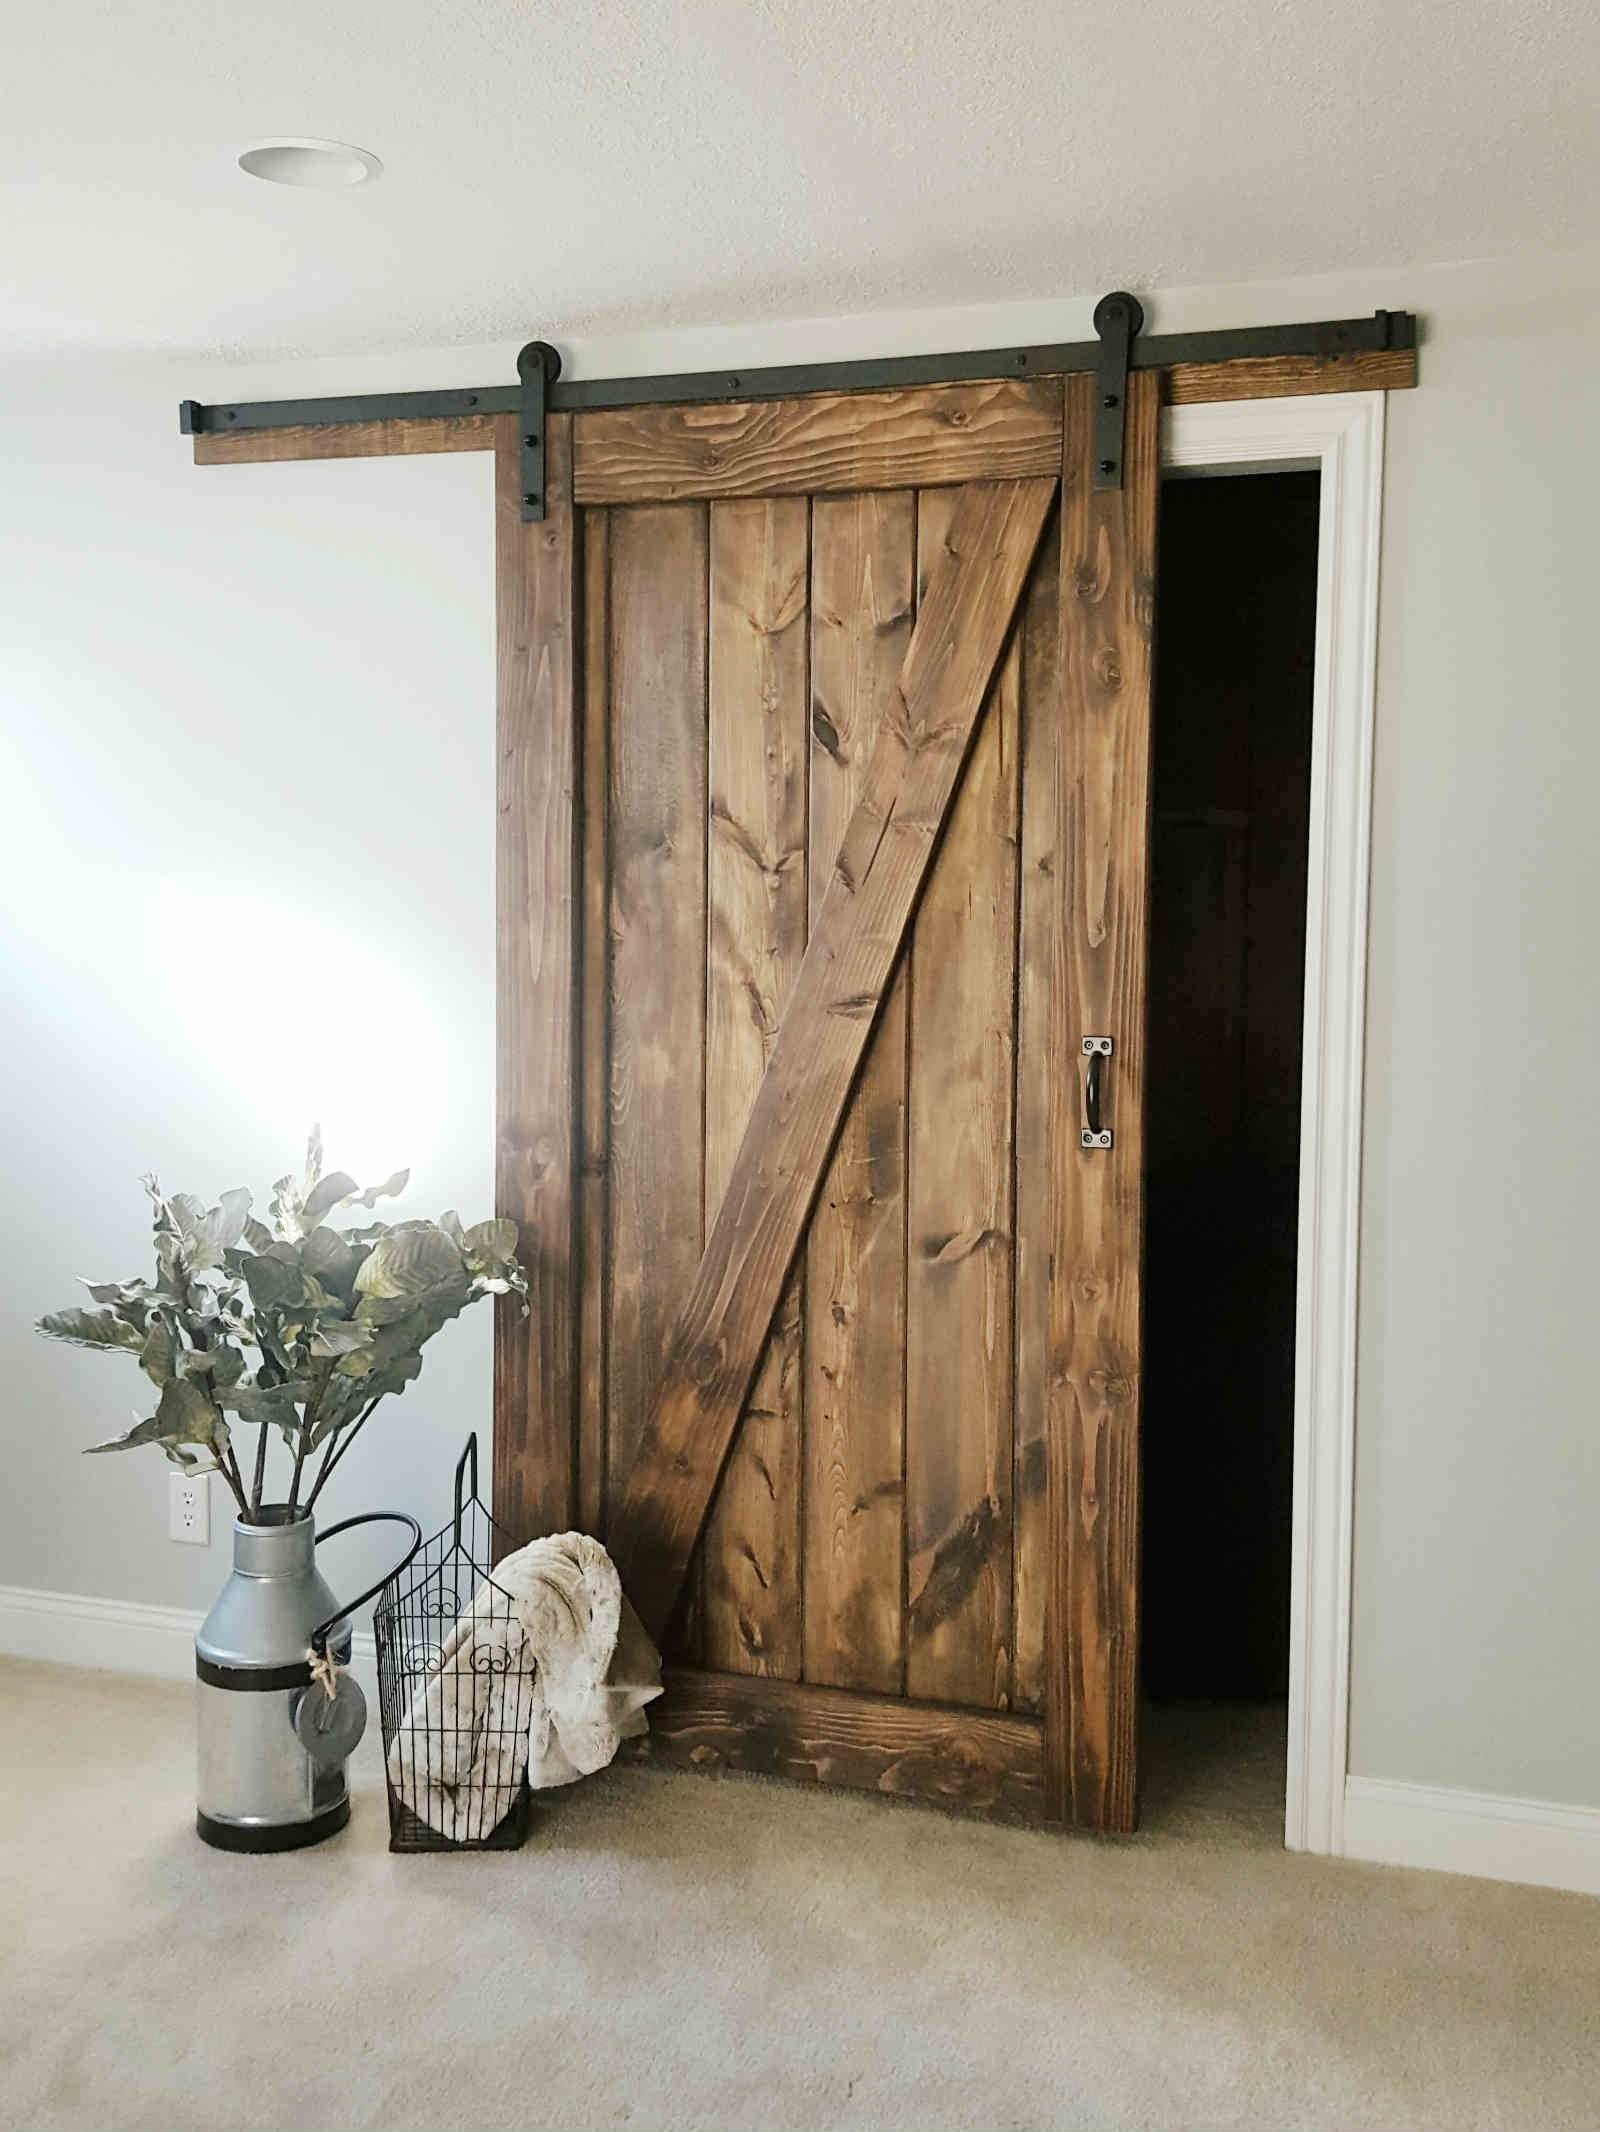 Barn door sliding 1 panel z style walston door company for The barn door company